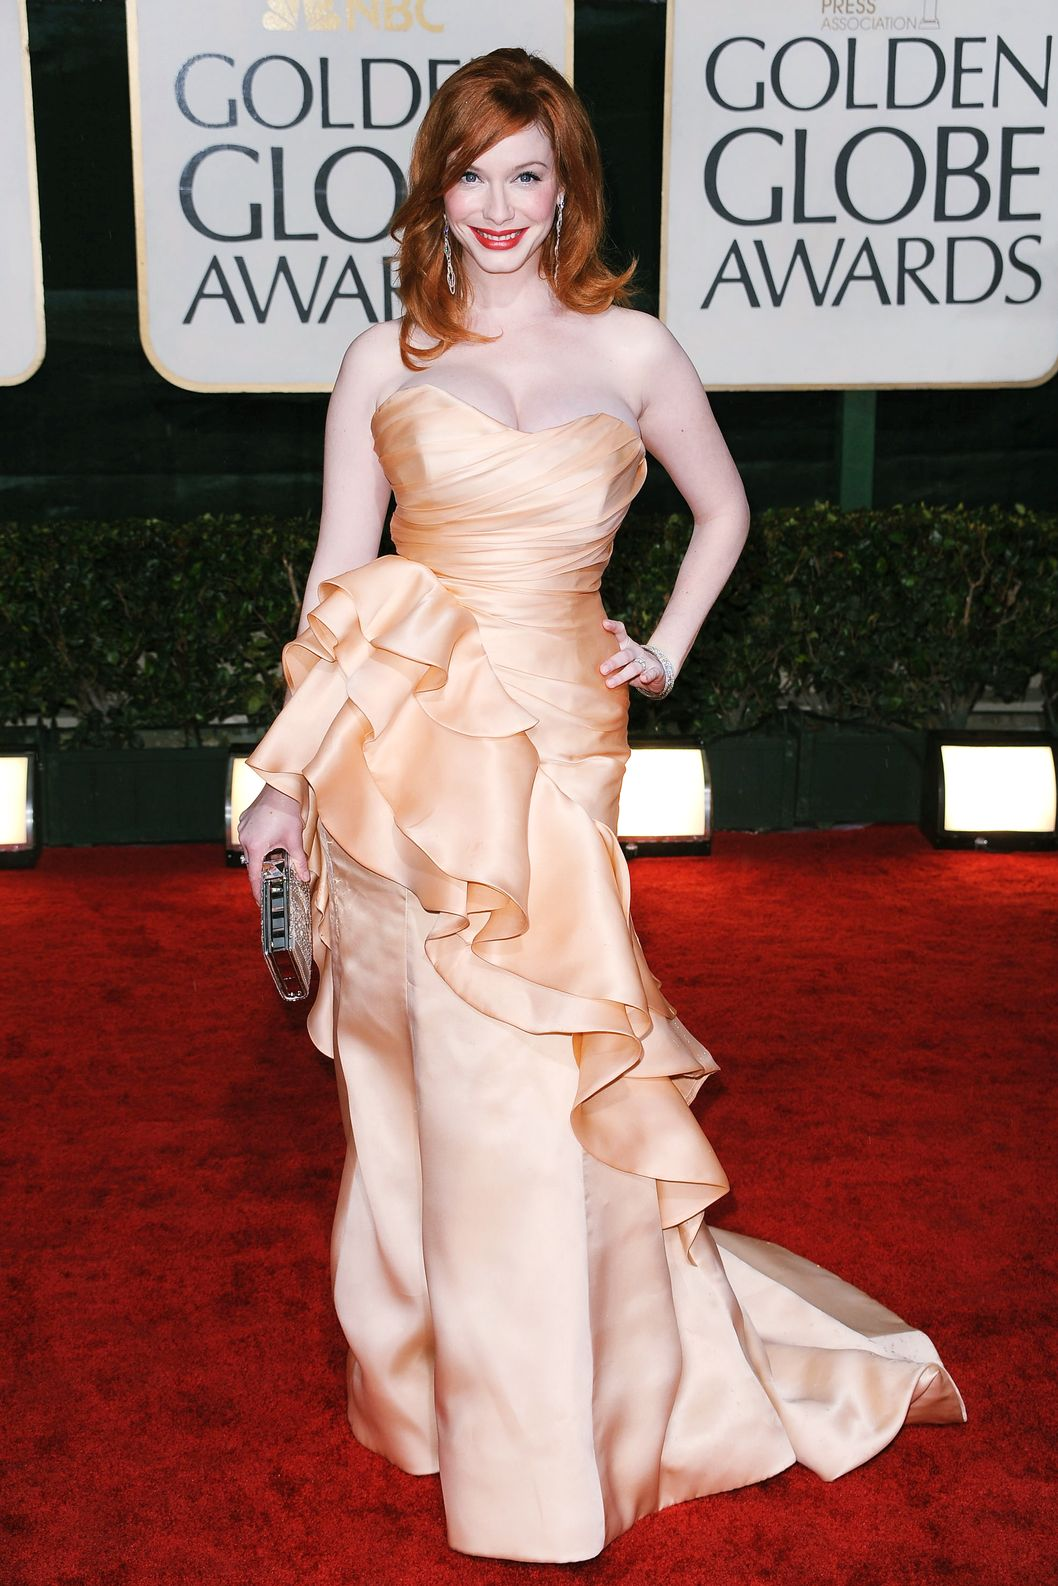 BEVERLY HILLS, CA - JANUARY 17:  Actress Christina Hendricks arrives at the 67th Annual Golden Globe Awards held at The Beverly Hilton Hotel on January 17, 2010 in Beverly Hills, California.  (Photo by Frazer Harrison/Getty Images)